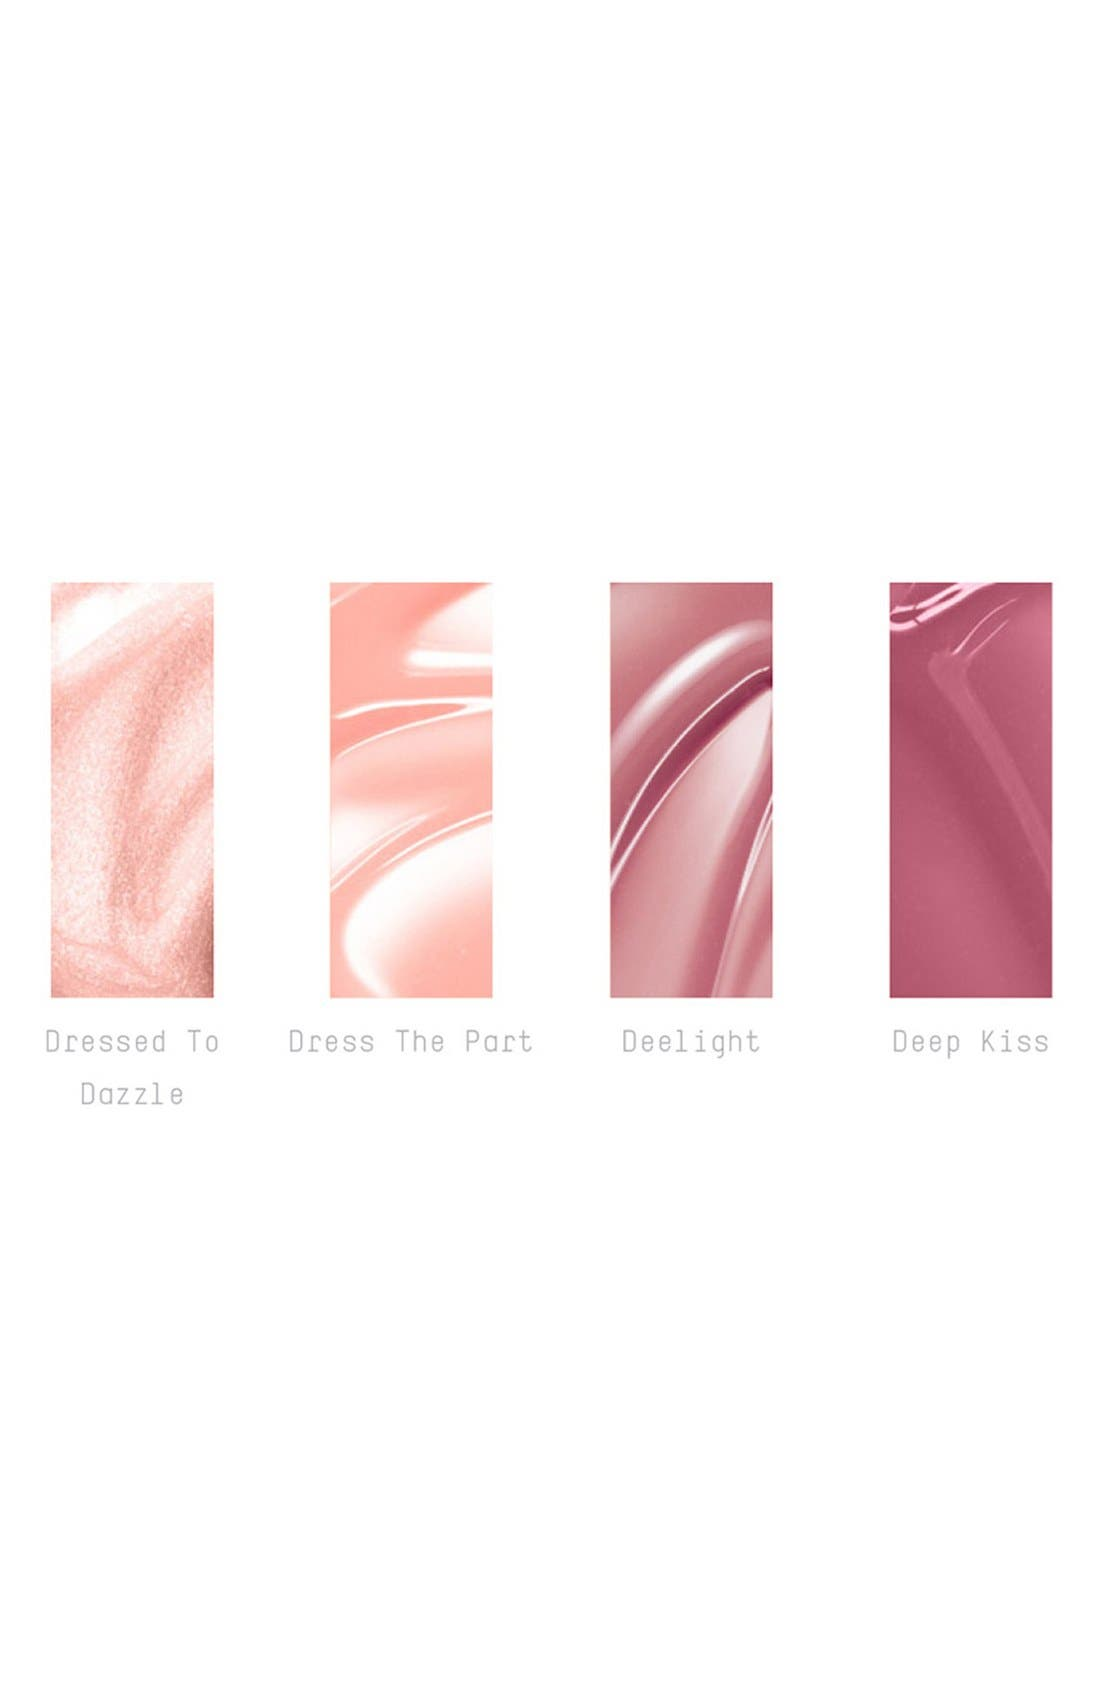 M·A·C 'Irresistibly Charming - Nude' Mini Lip Gloss Set,                             Alternate thumbnail 2, color,                             250